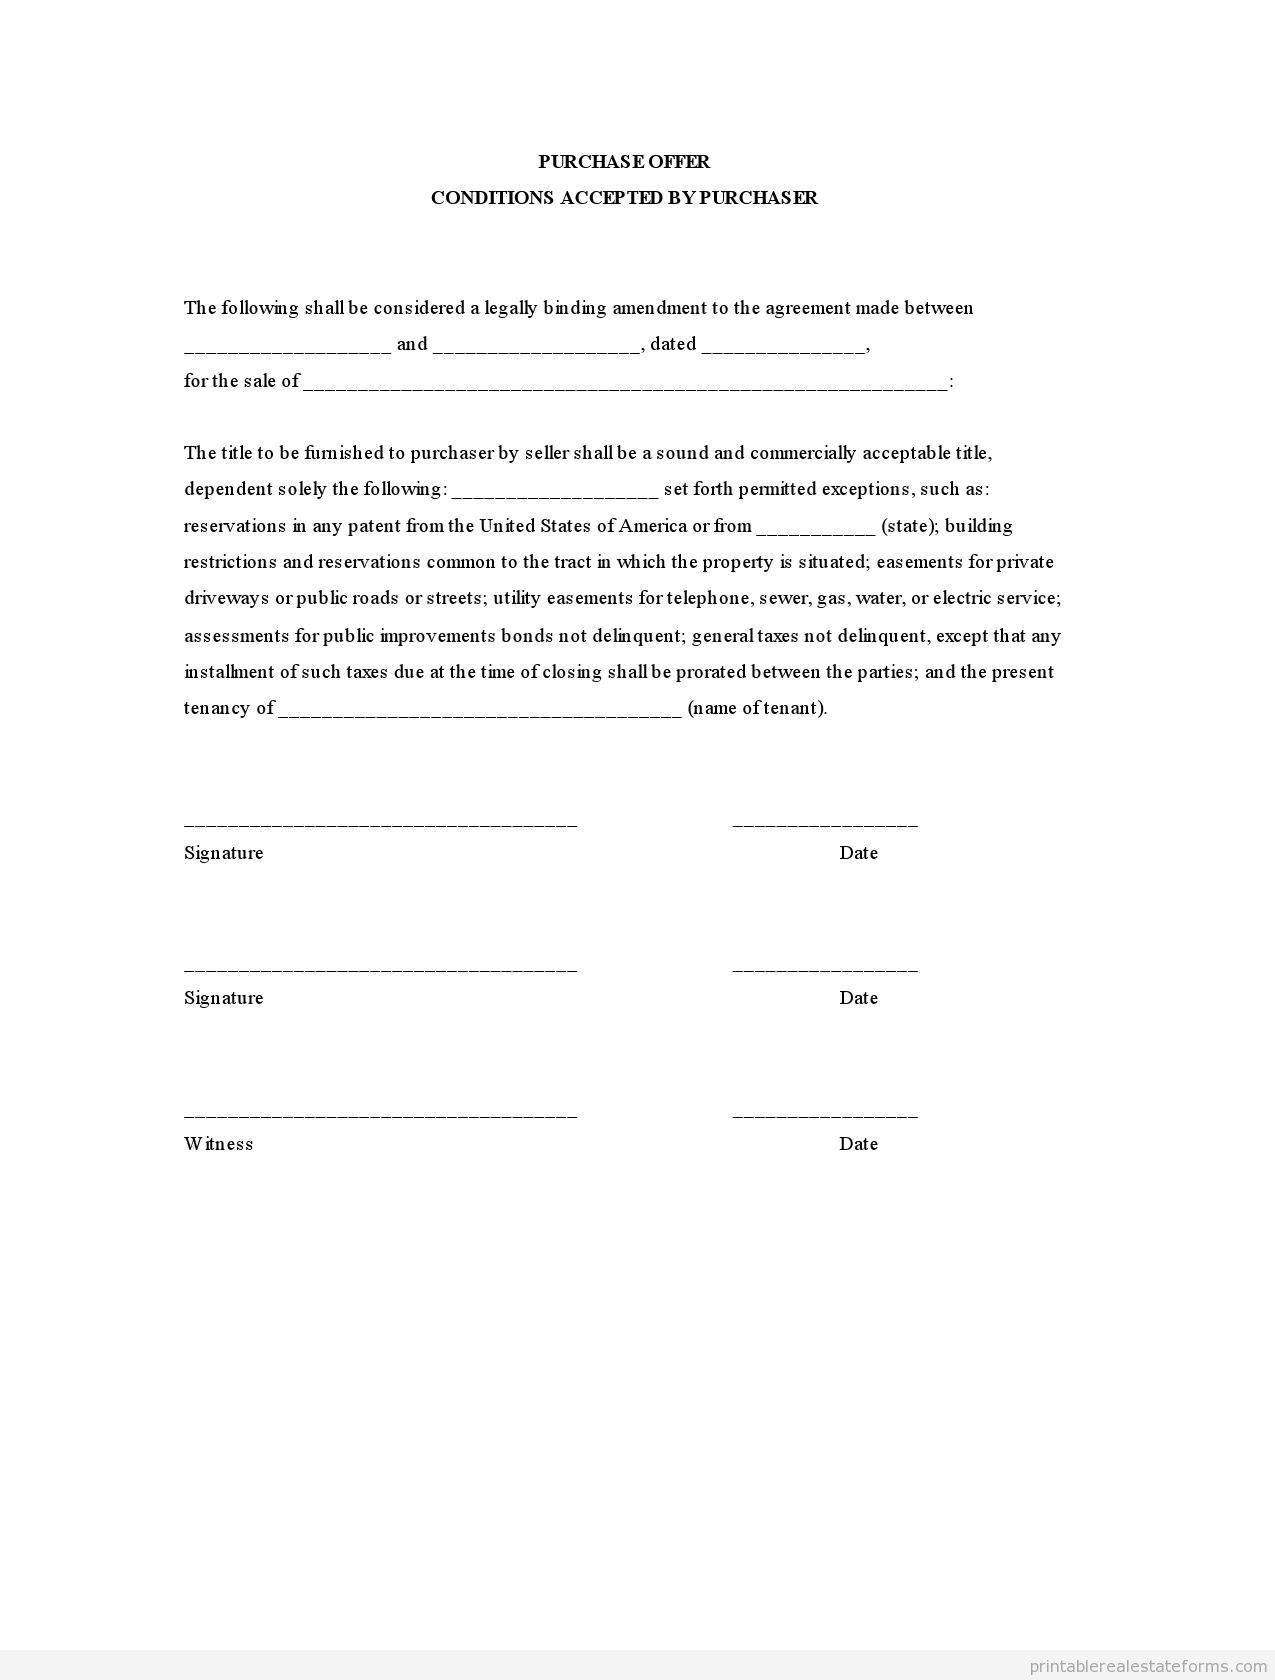 Get High Quality Printable Purchase Offer FormPURCHASE OFFER – Printable Purchase Agreement